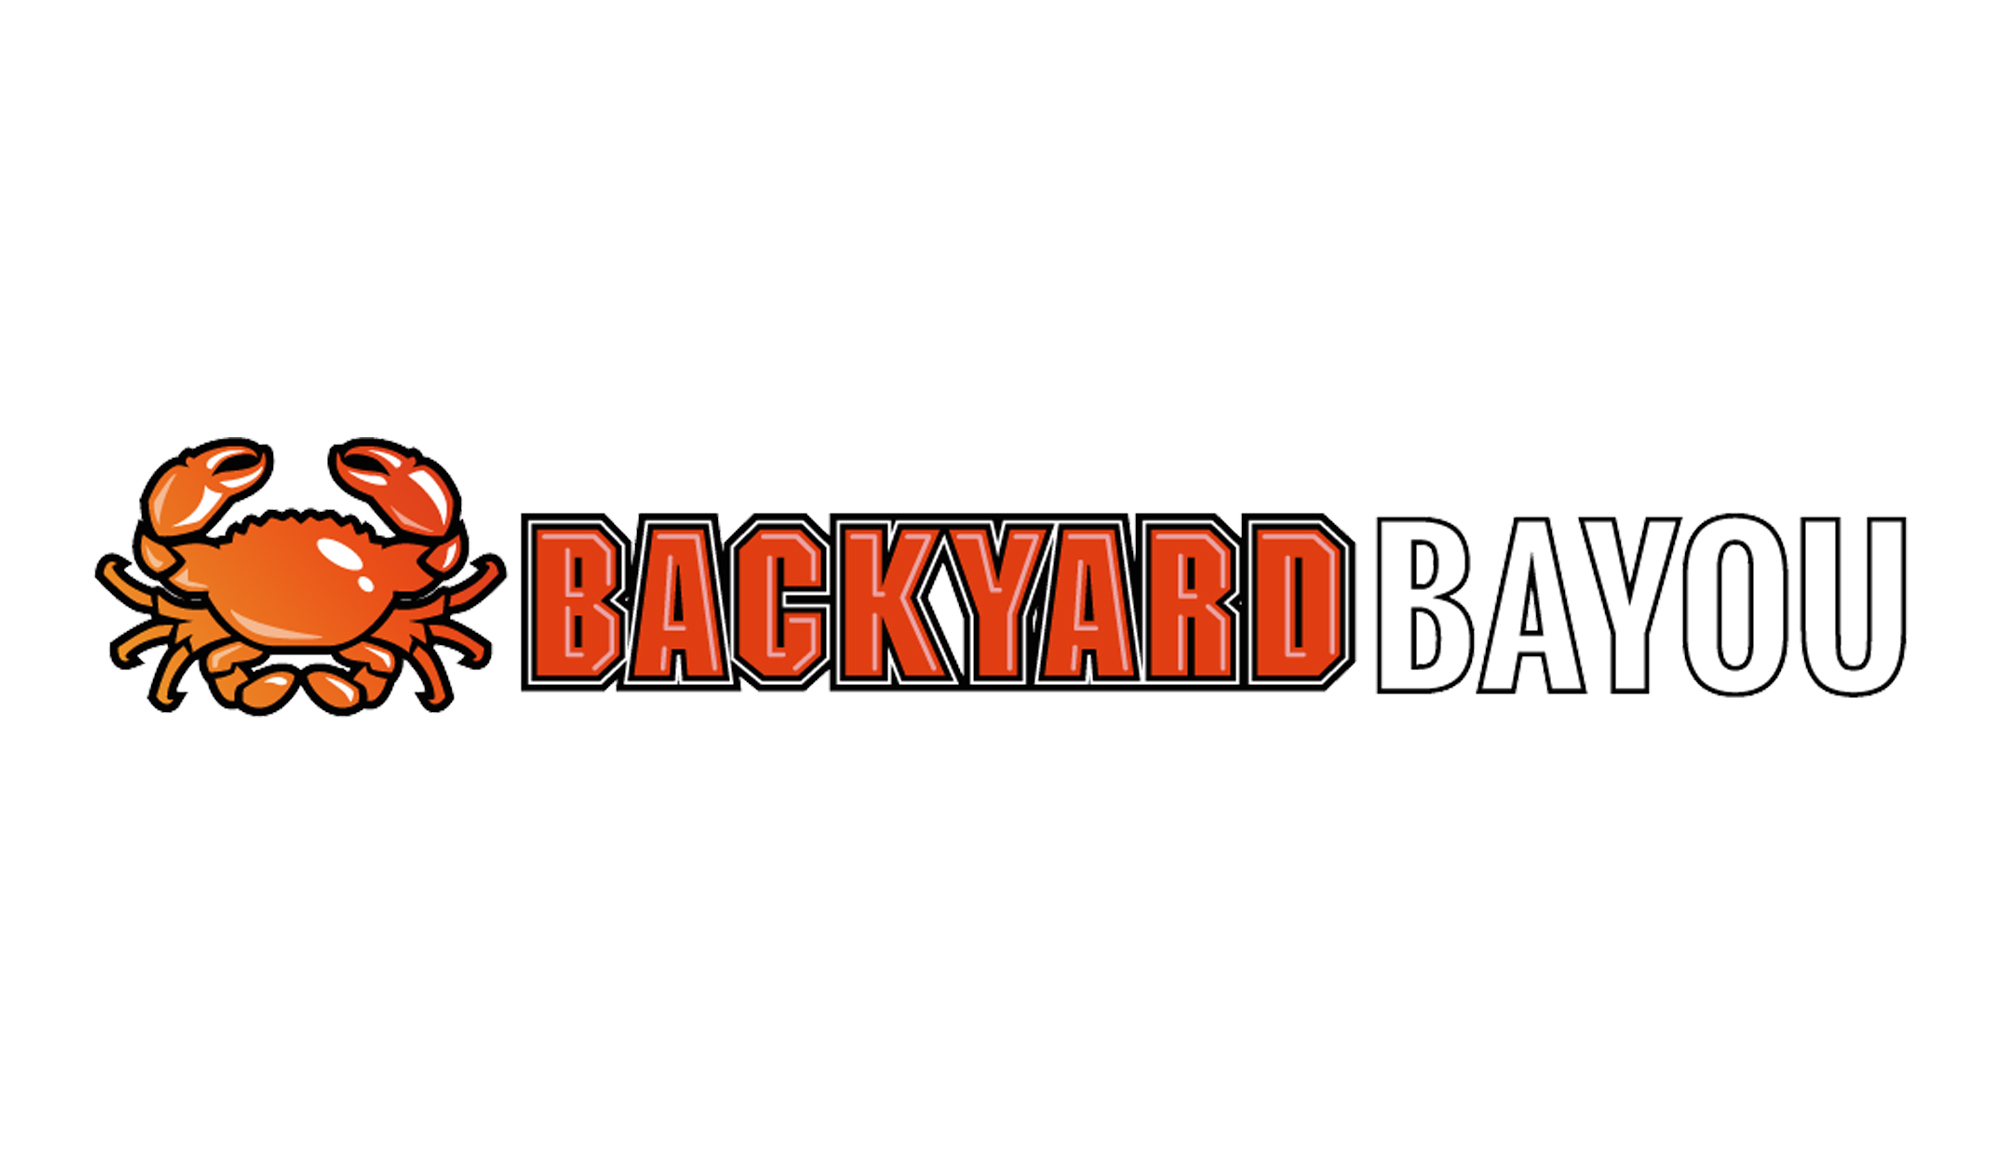 Backyard Bayou restaurant logo